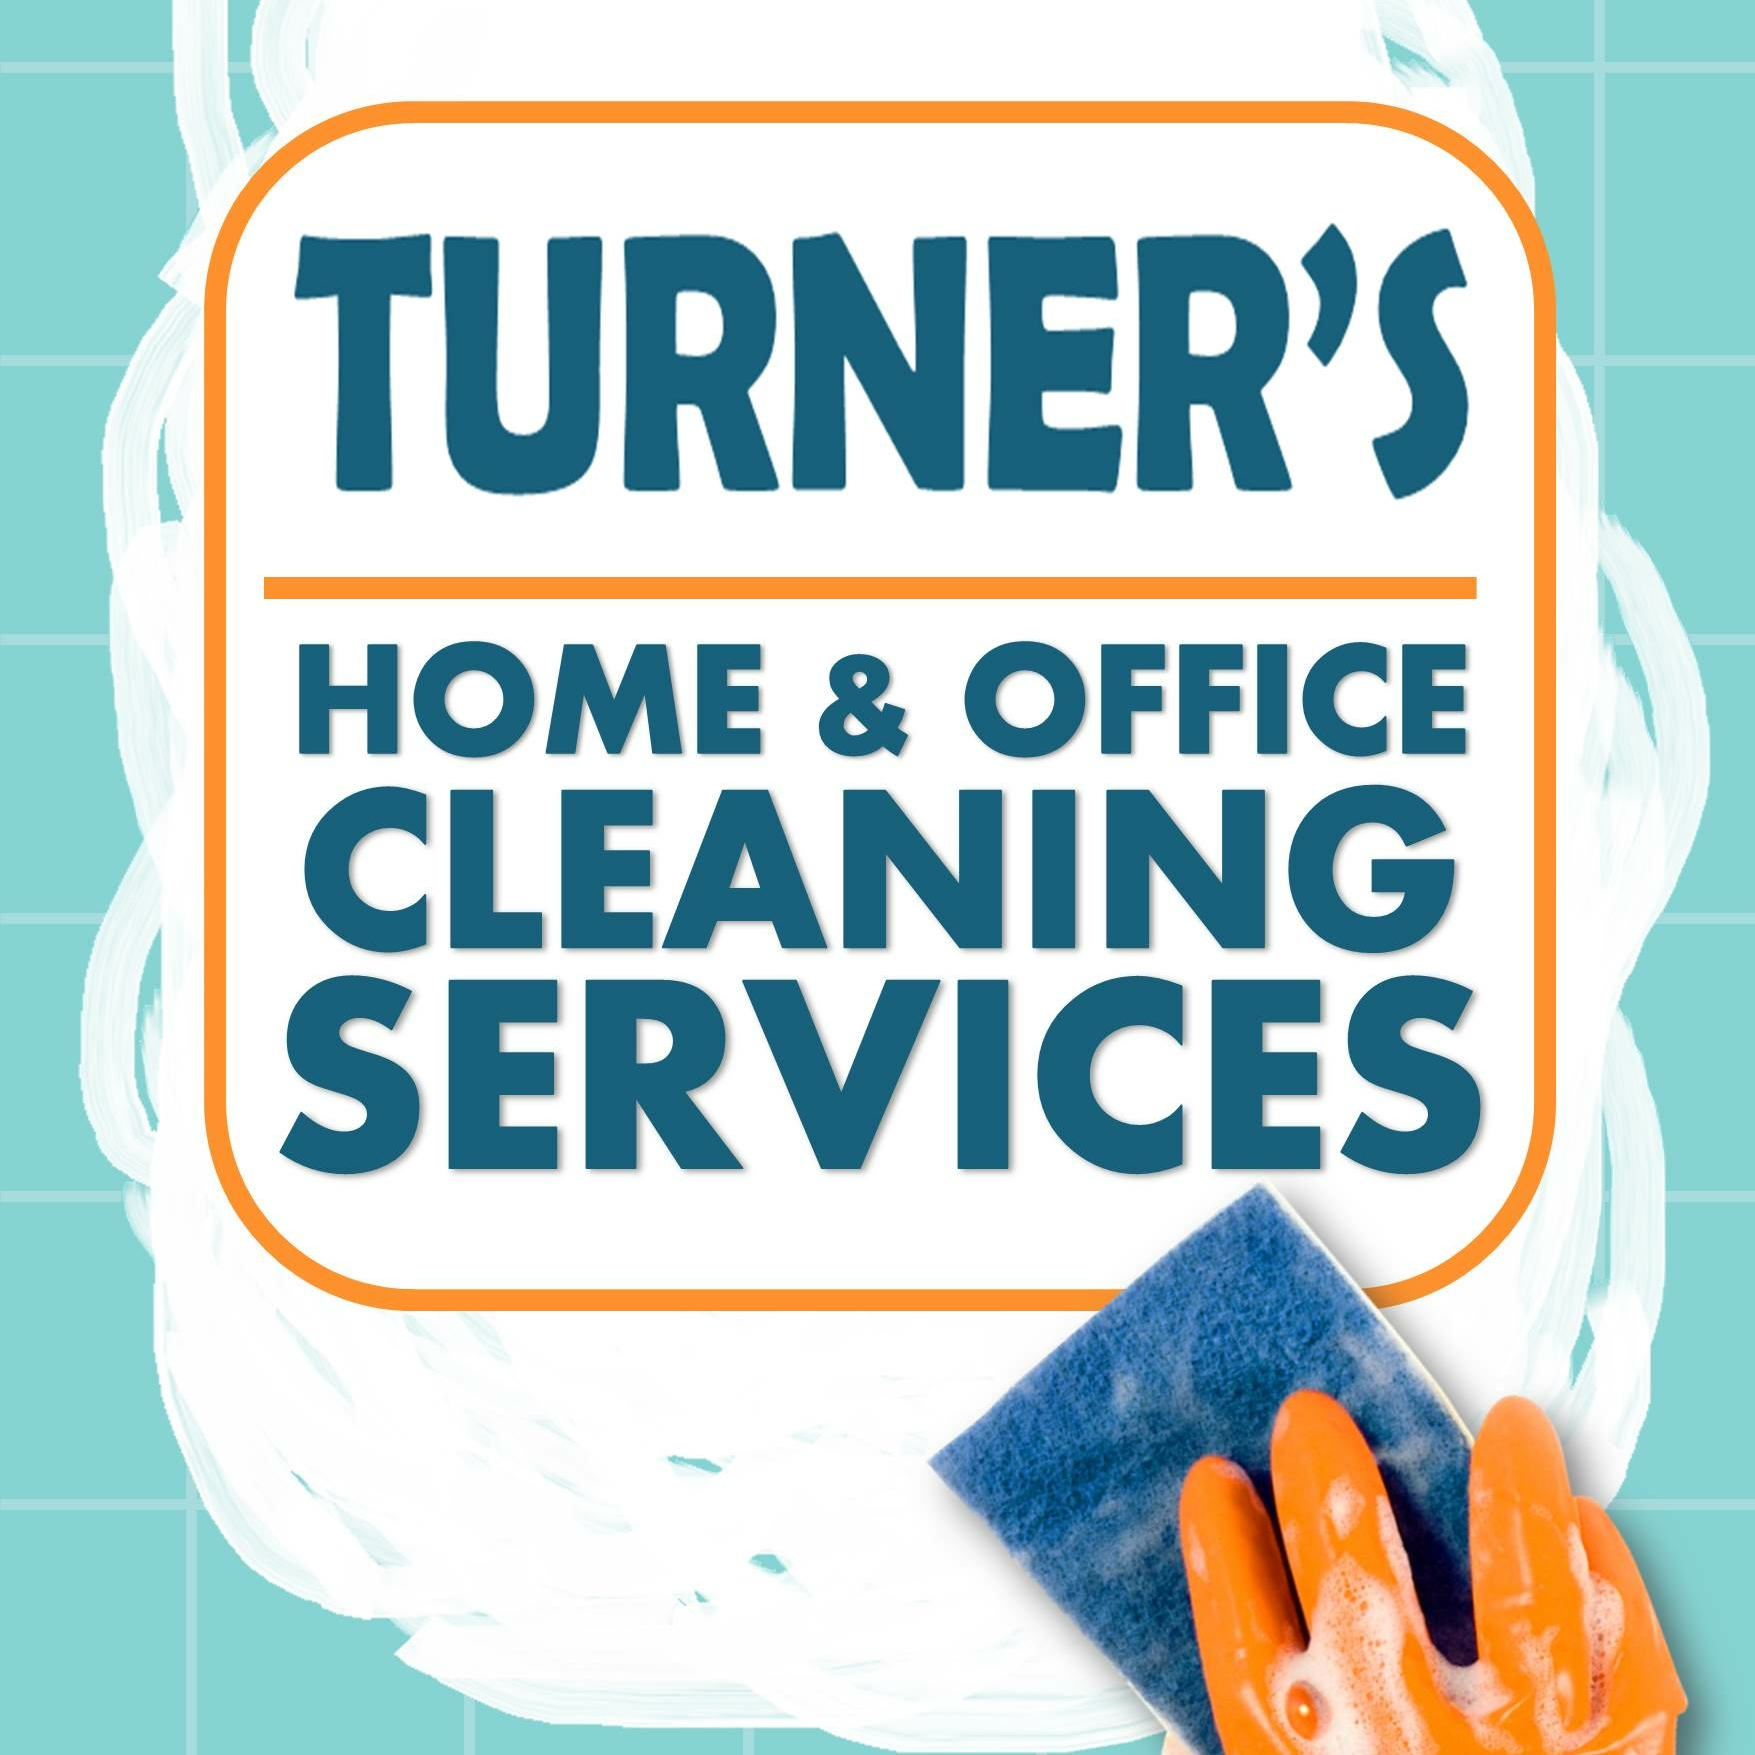 Turners Home and Office Cleaning Services